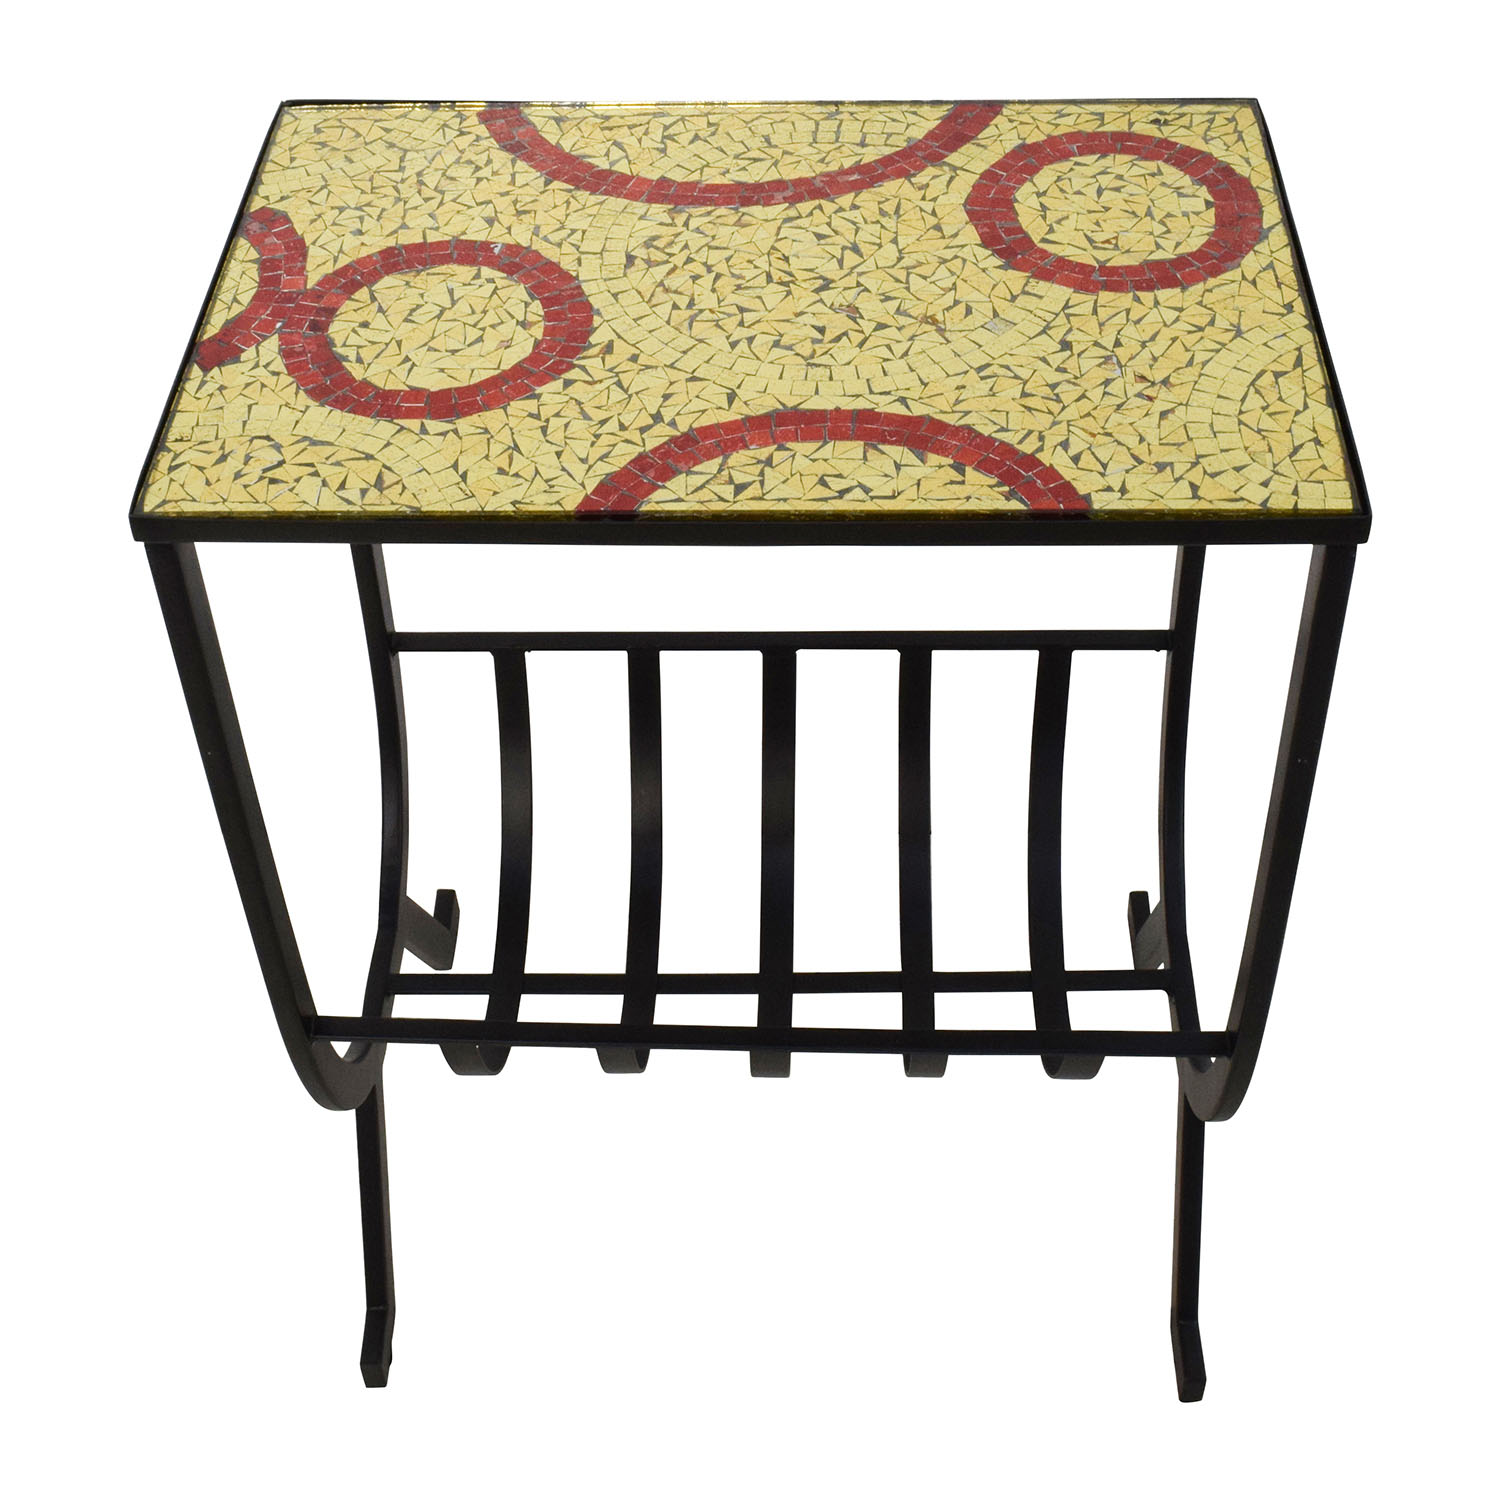 off pier mosaic magazine accent table tables used one outdoor end coupon thin side small mirrored gold wood coffee round extension dining newport pet crate room chair covers argos